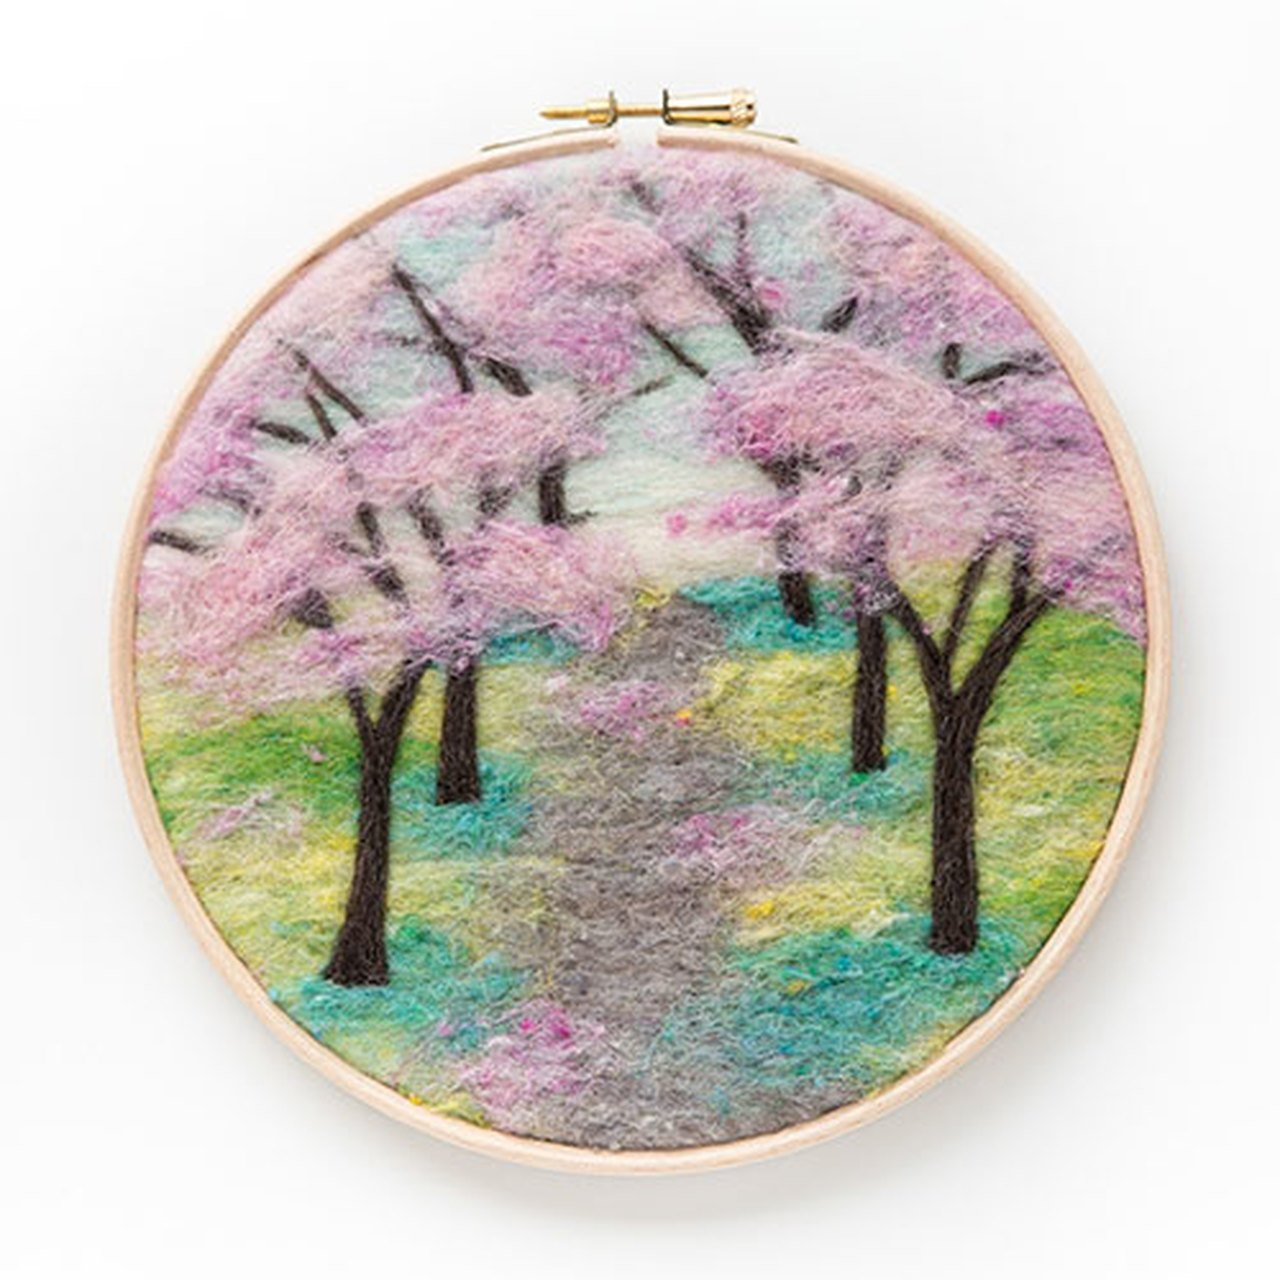 Cherry Blossom Needle Felting Kit